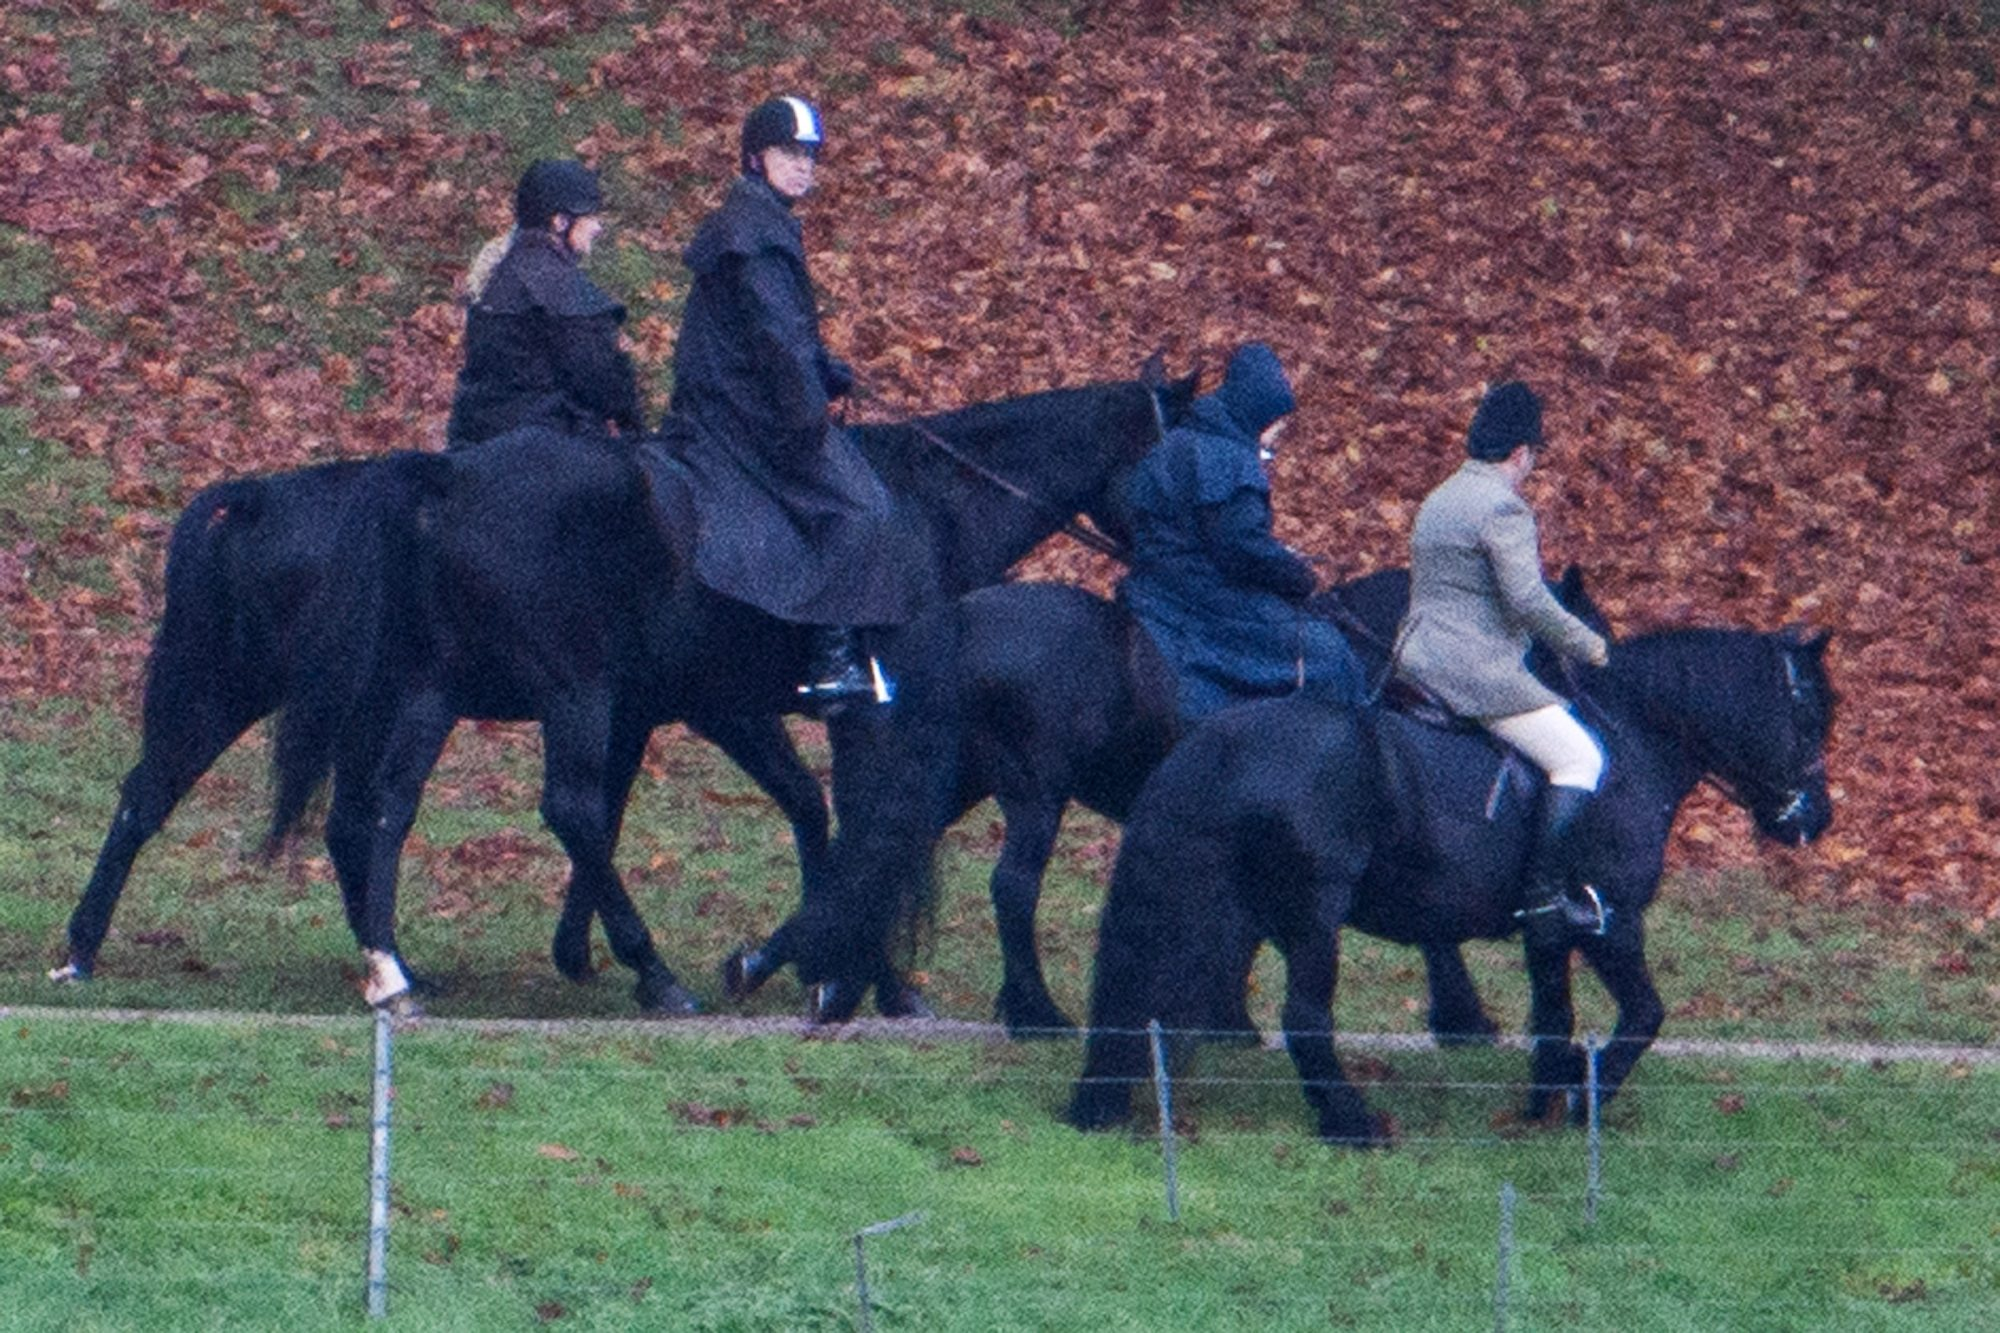 22/11/2019. Windsor, UK. Prince Andrew, The Duke of York (second left), is seen riding a horse with Queen Elizabeth II (second right) in the grounds of Windsor Castle estate. Prince Andrew is stepping down from official duties following a Newsnight interview on his relationship with Jeffrey Epstein.